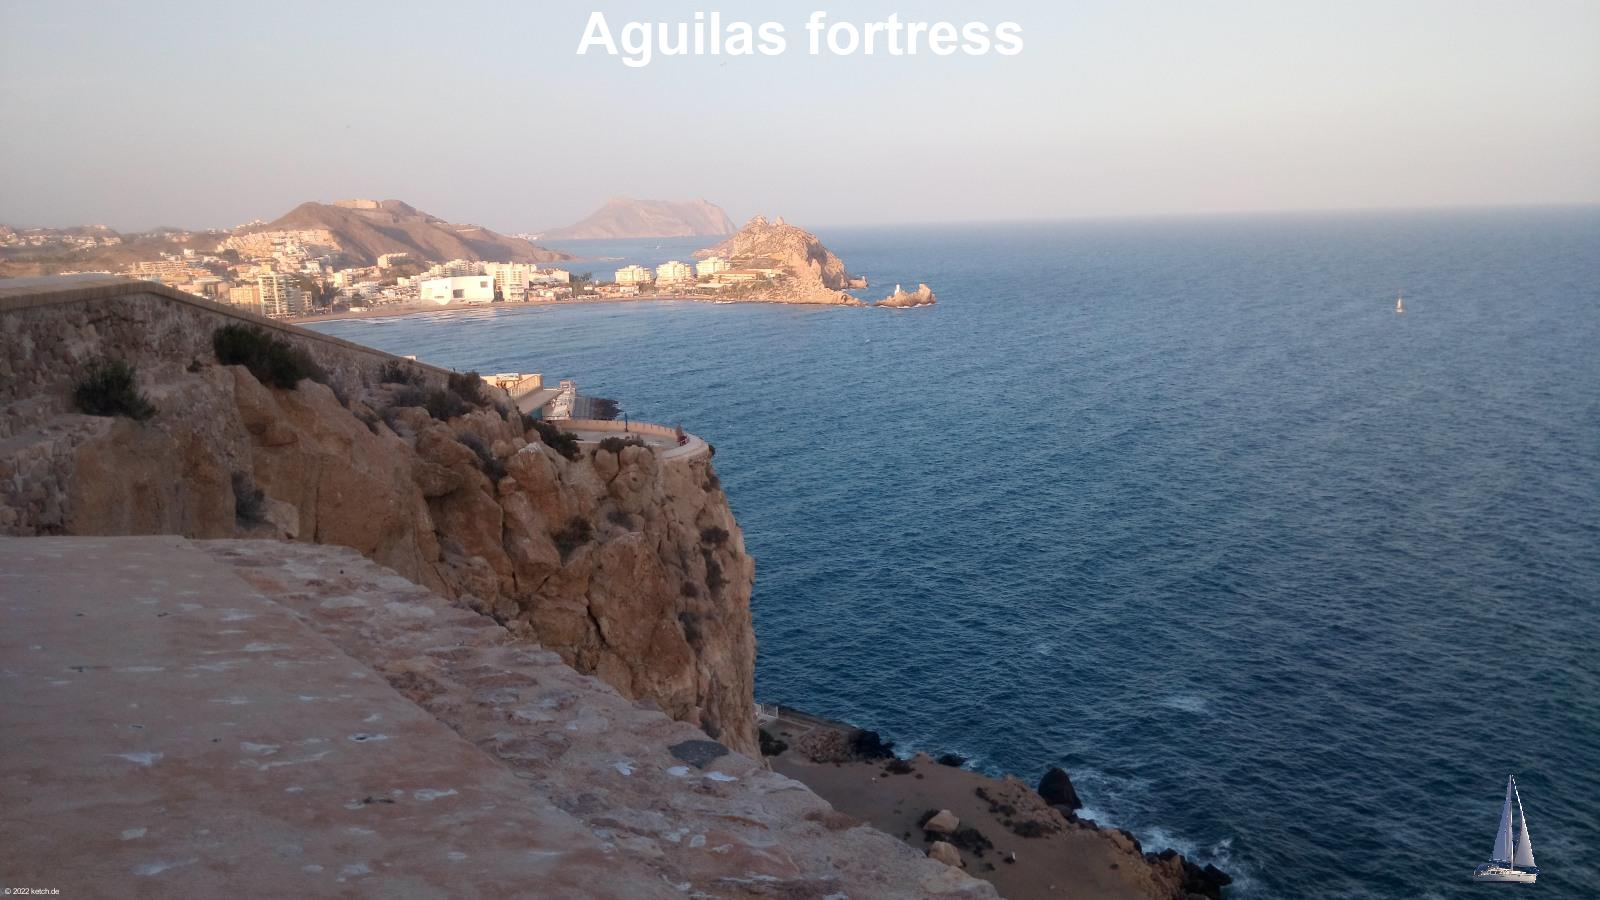 Aguilas fortress